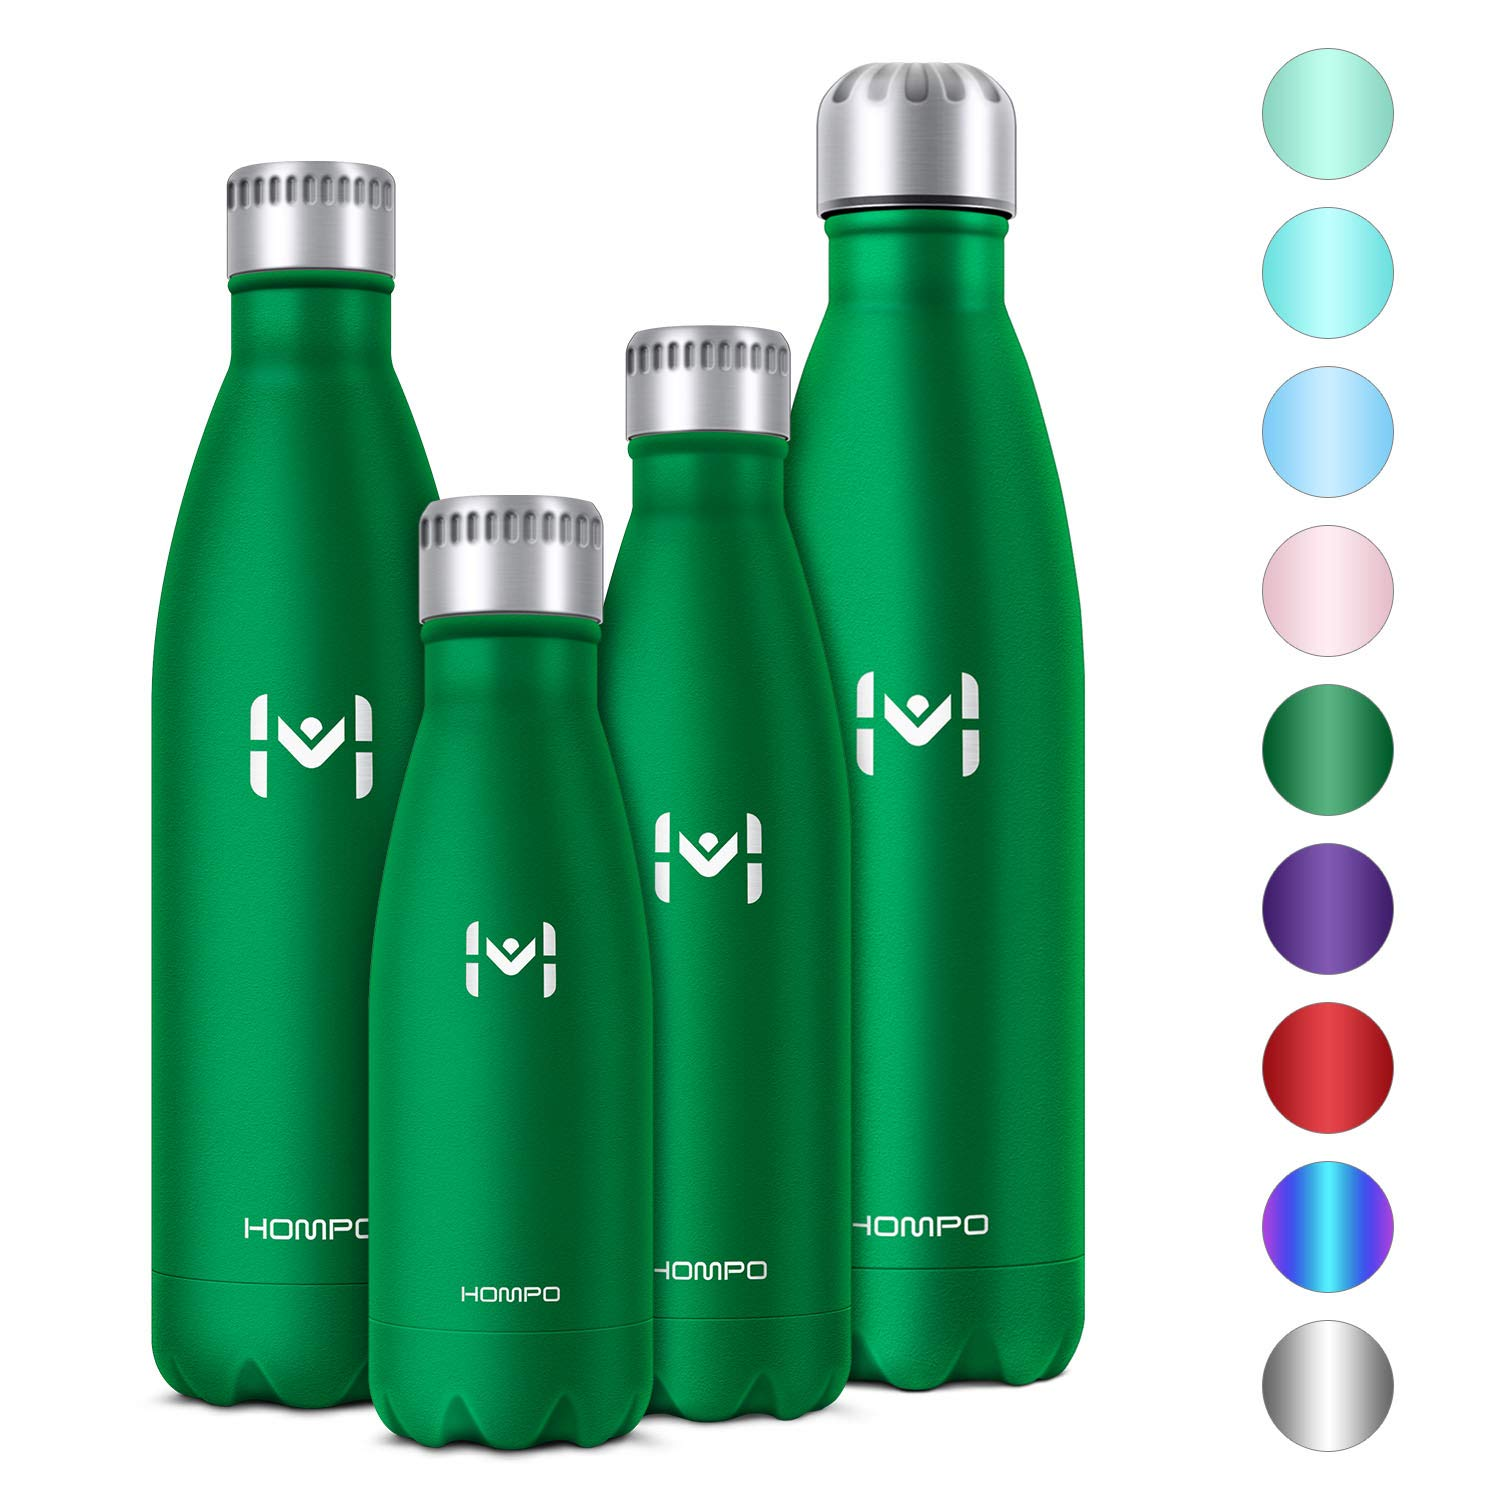 Silver Sports Hompo Stainless Steel Water Bottle 27 oz//750 ml BPA Free Vacuum Insulated Metal Reusable Water Bottle Double Walled Keeps Hot and Cold Leak Proof Drinks Bottle for Kids Gym